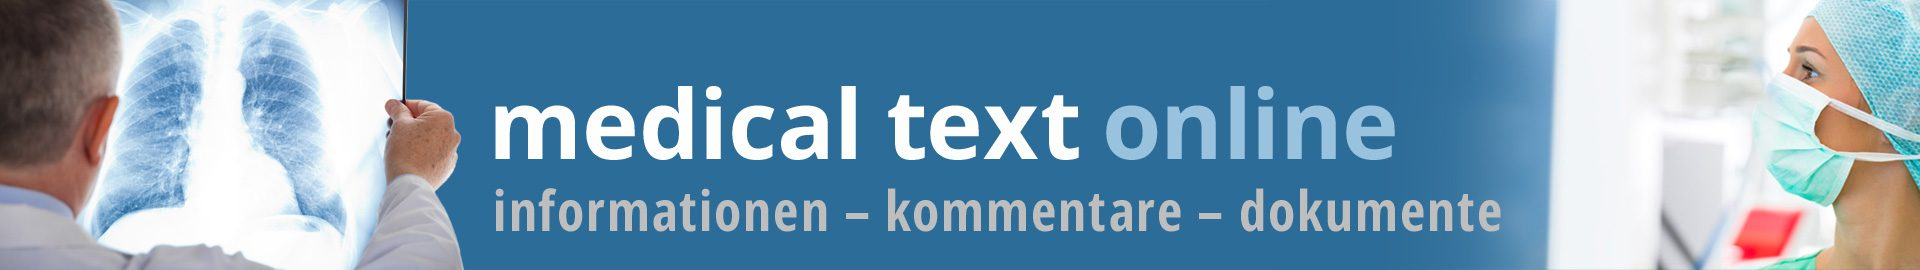 medical text online